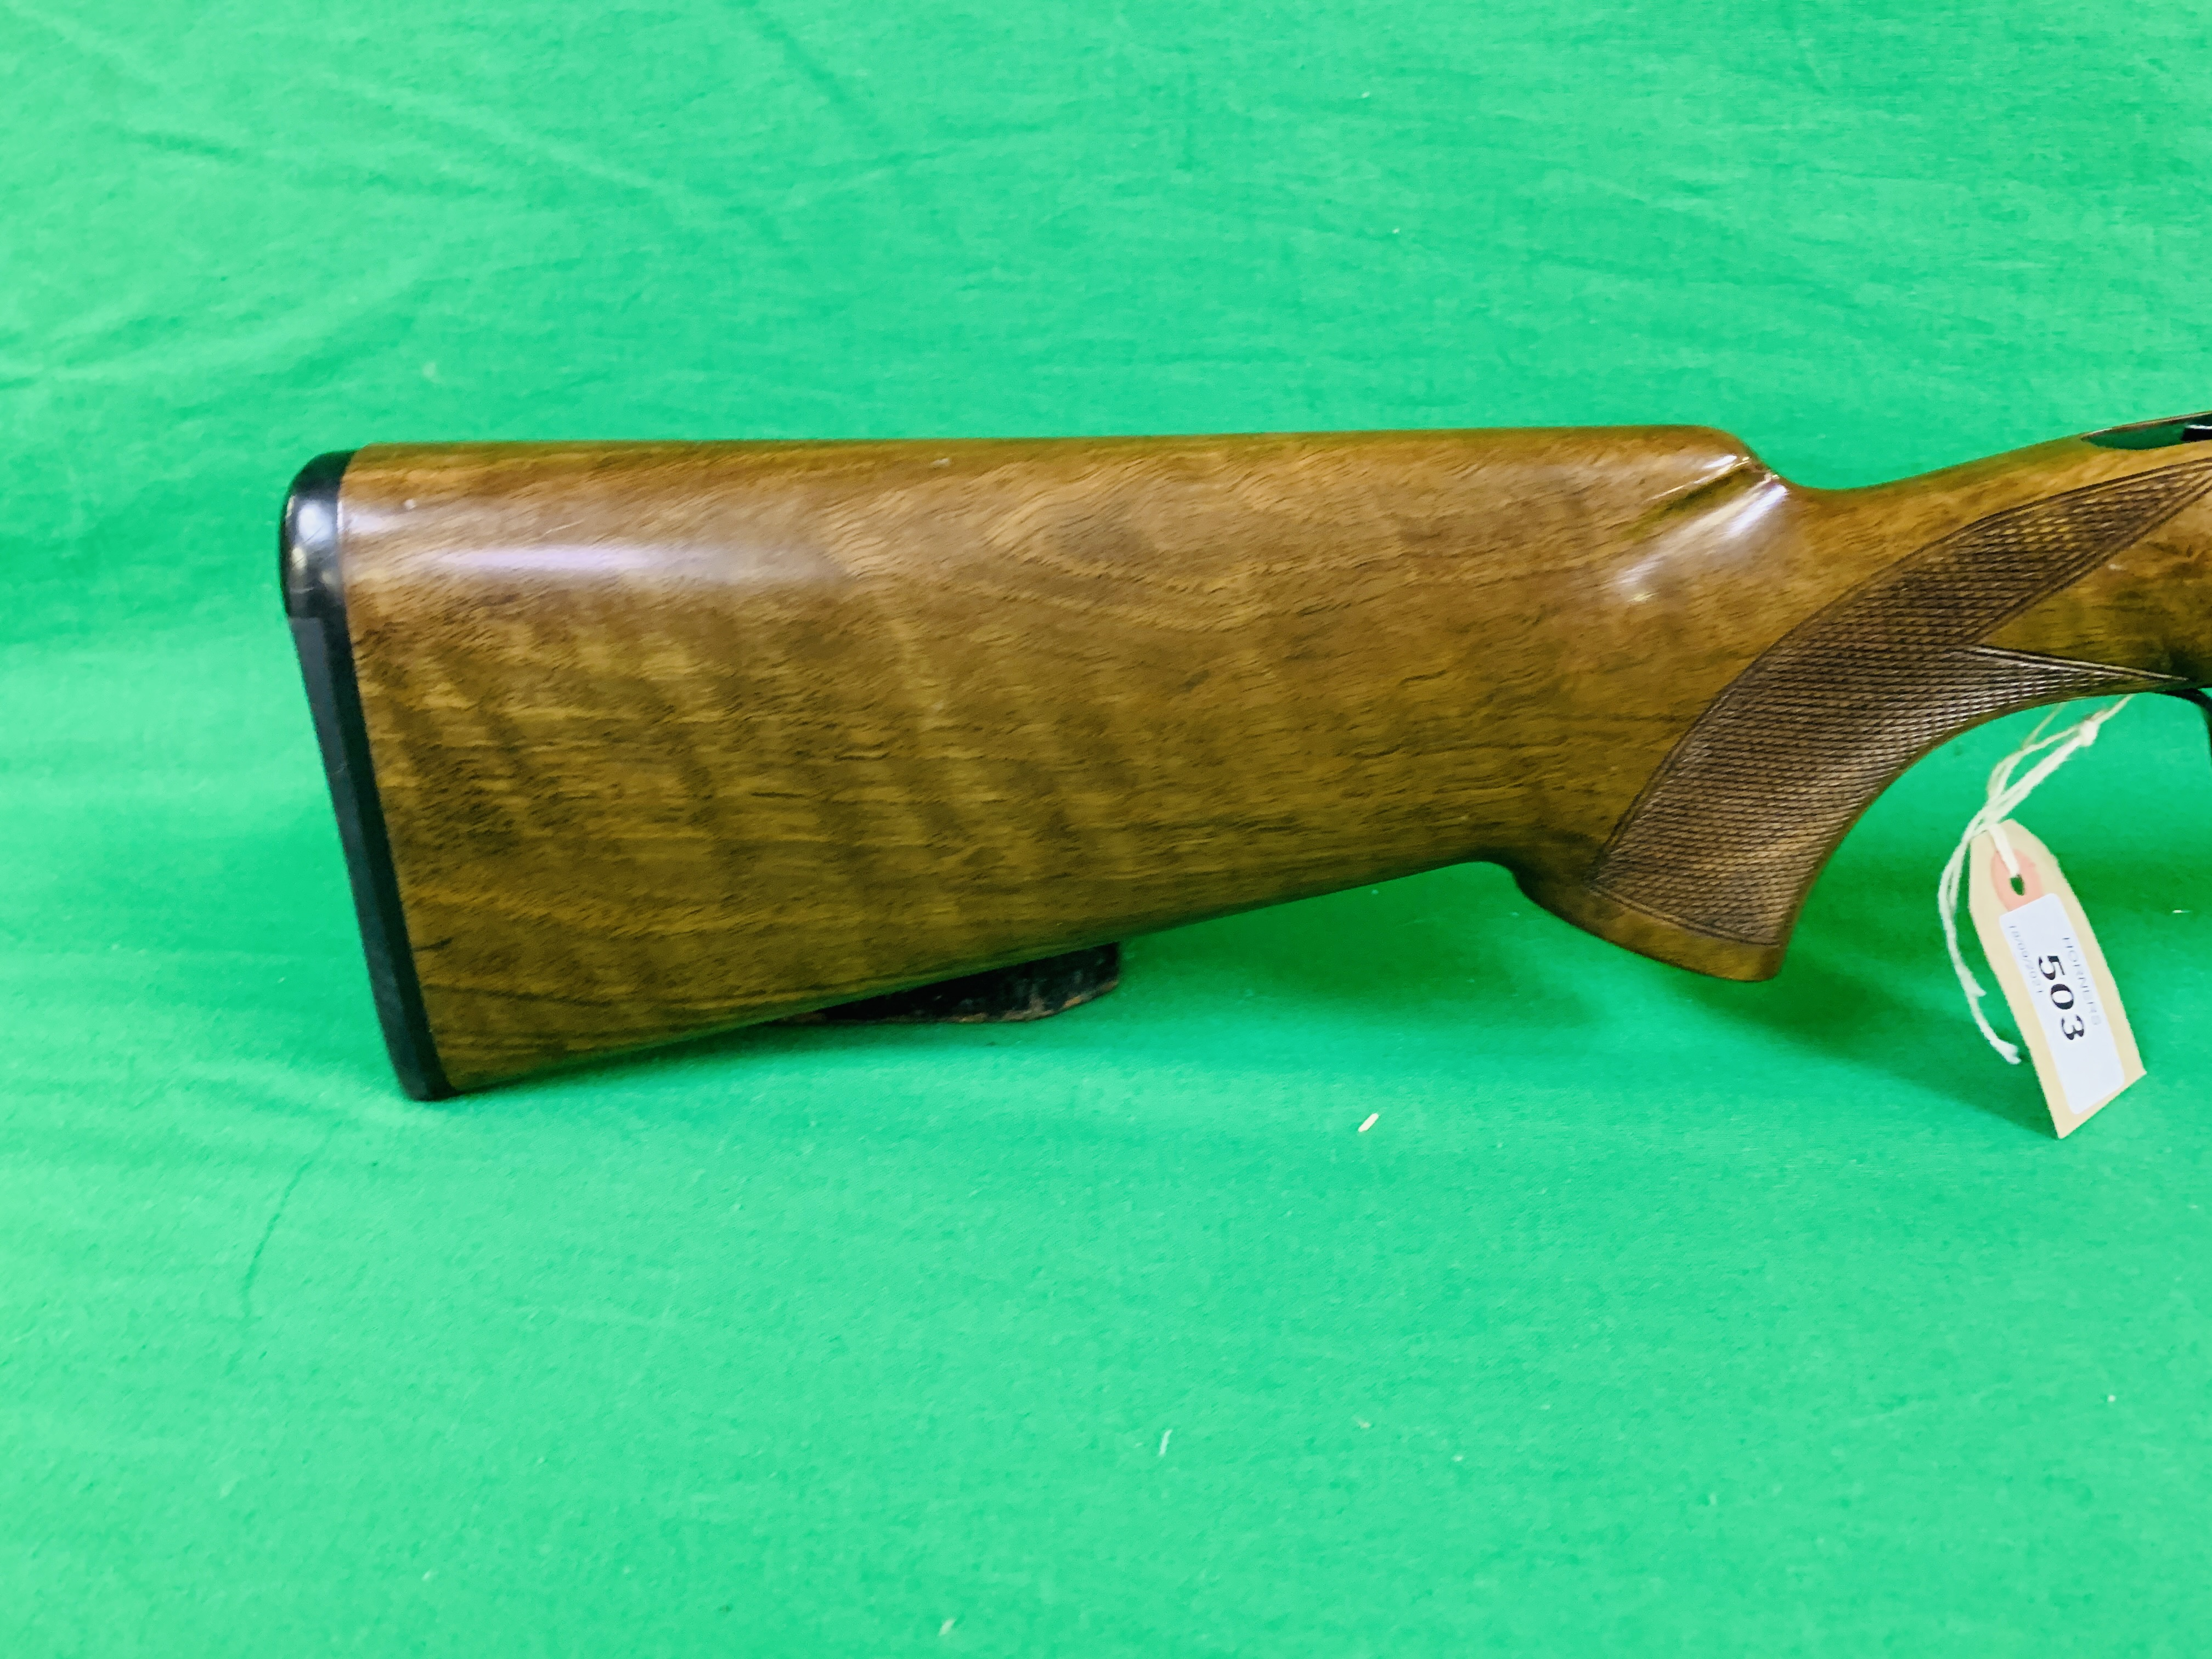 ZAFER MODEL 01612 12 BORE OVER AND UNDER SHOTGUN # 01483, SELECTABLE SINGLE TRIGGER, NON EJECTOR, - Image 4 of 8